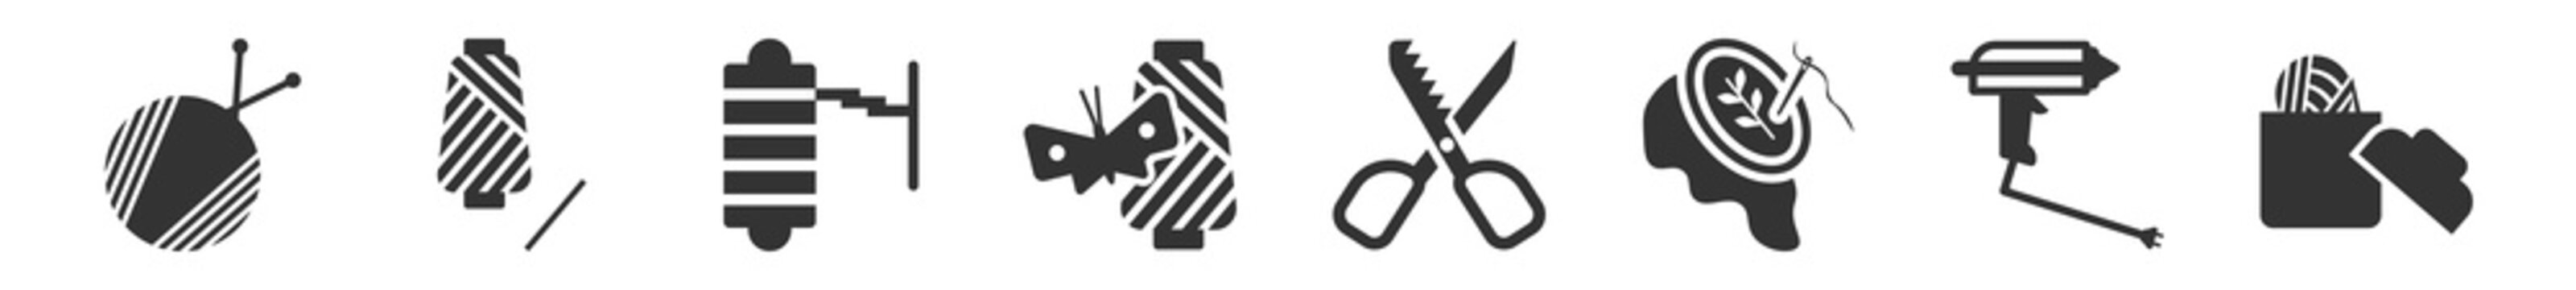 filled set of sew icons. glyph vector icons such as yarn, thread spool, tracing wheel, silk, pinking shears, sewing basket. vector illustration.